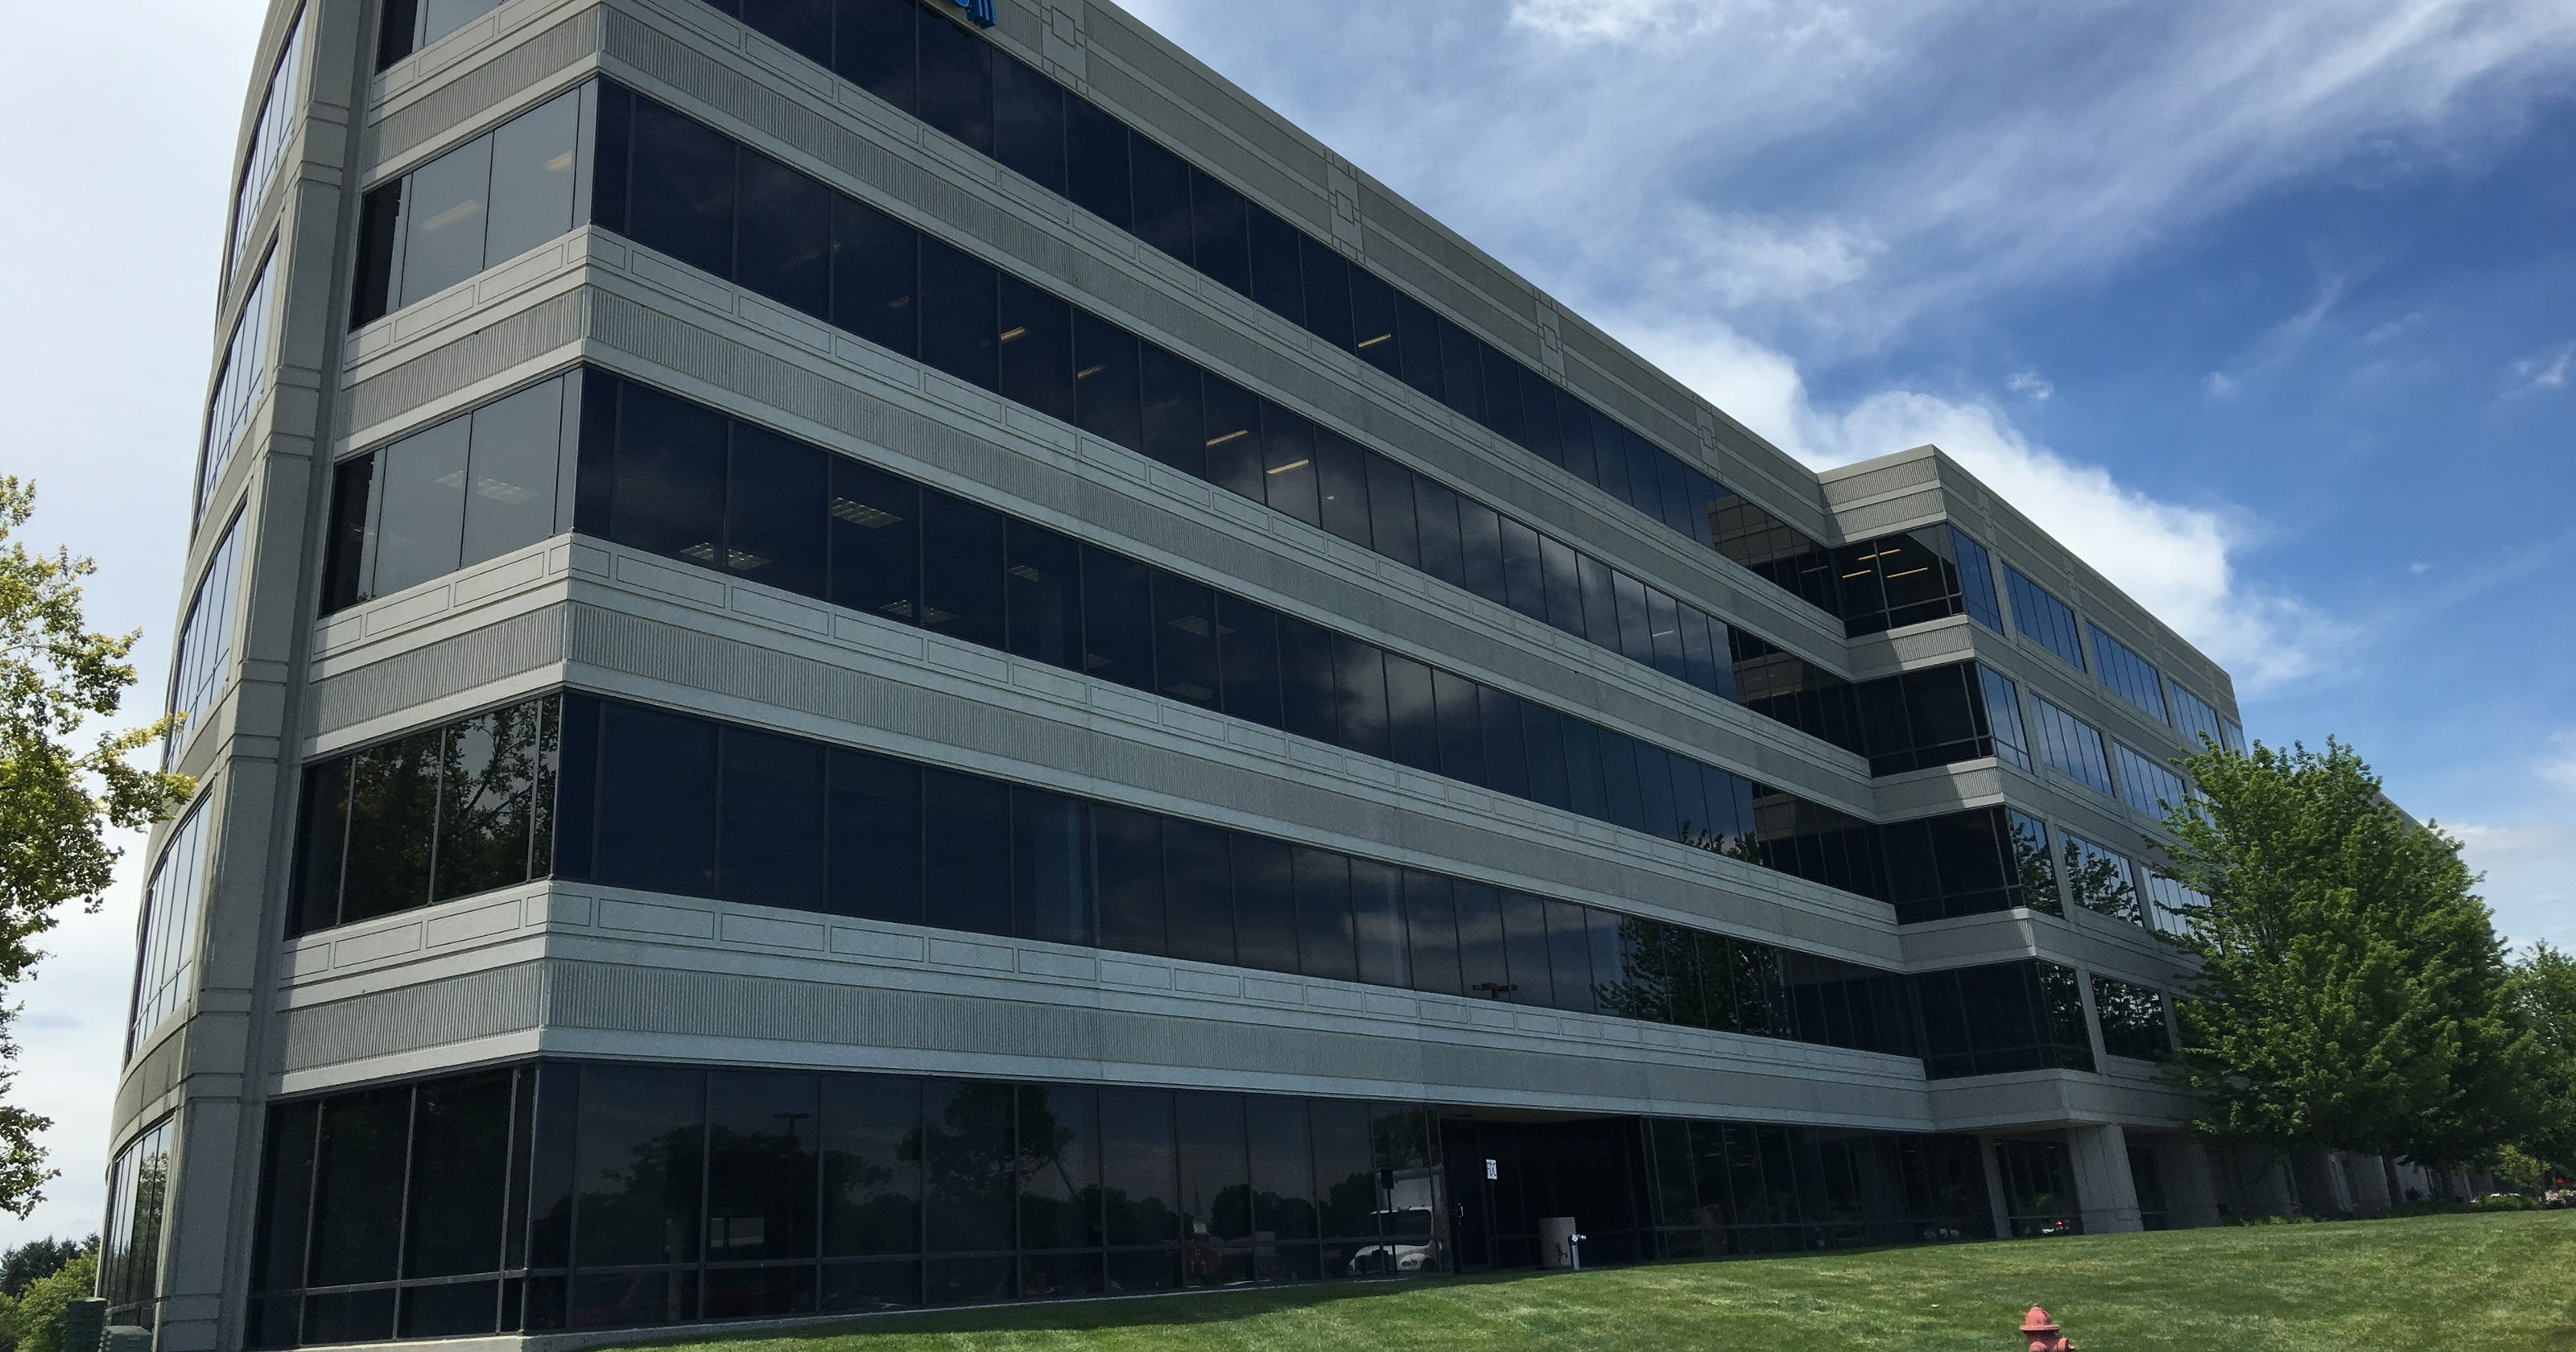 sallie mae to add up to 278 jobs in indianapolis